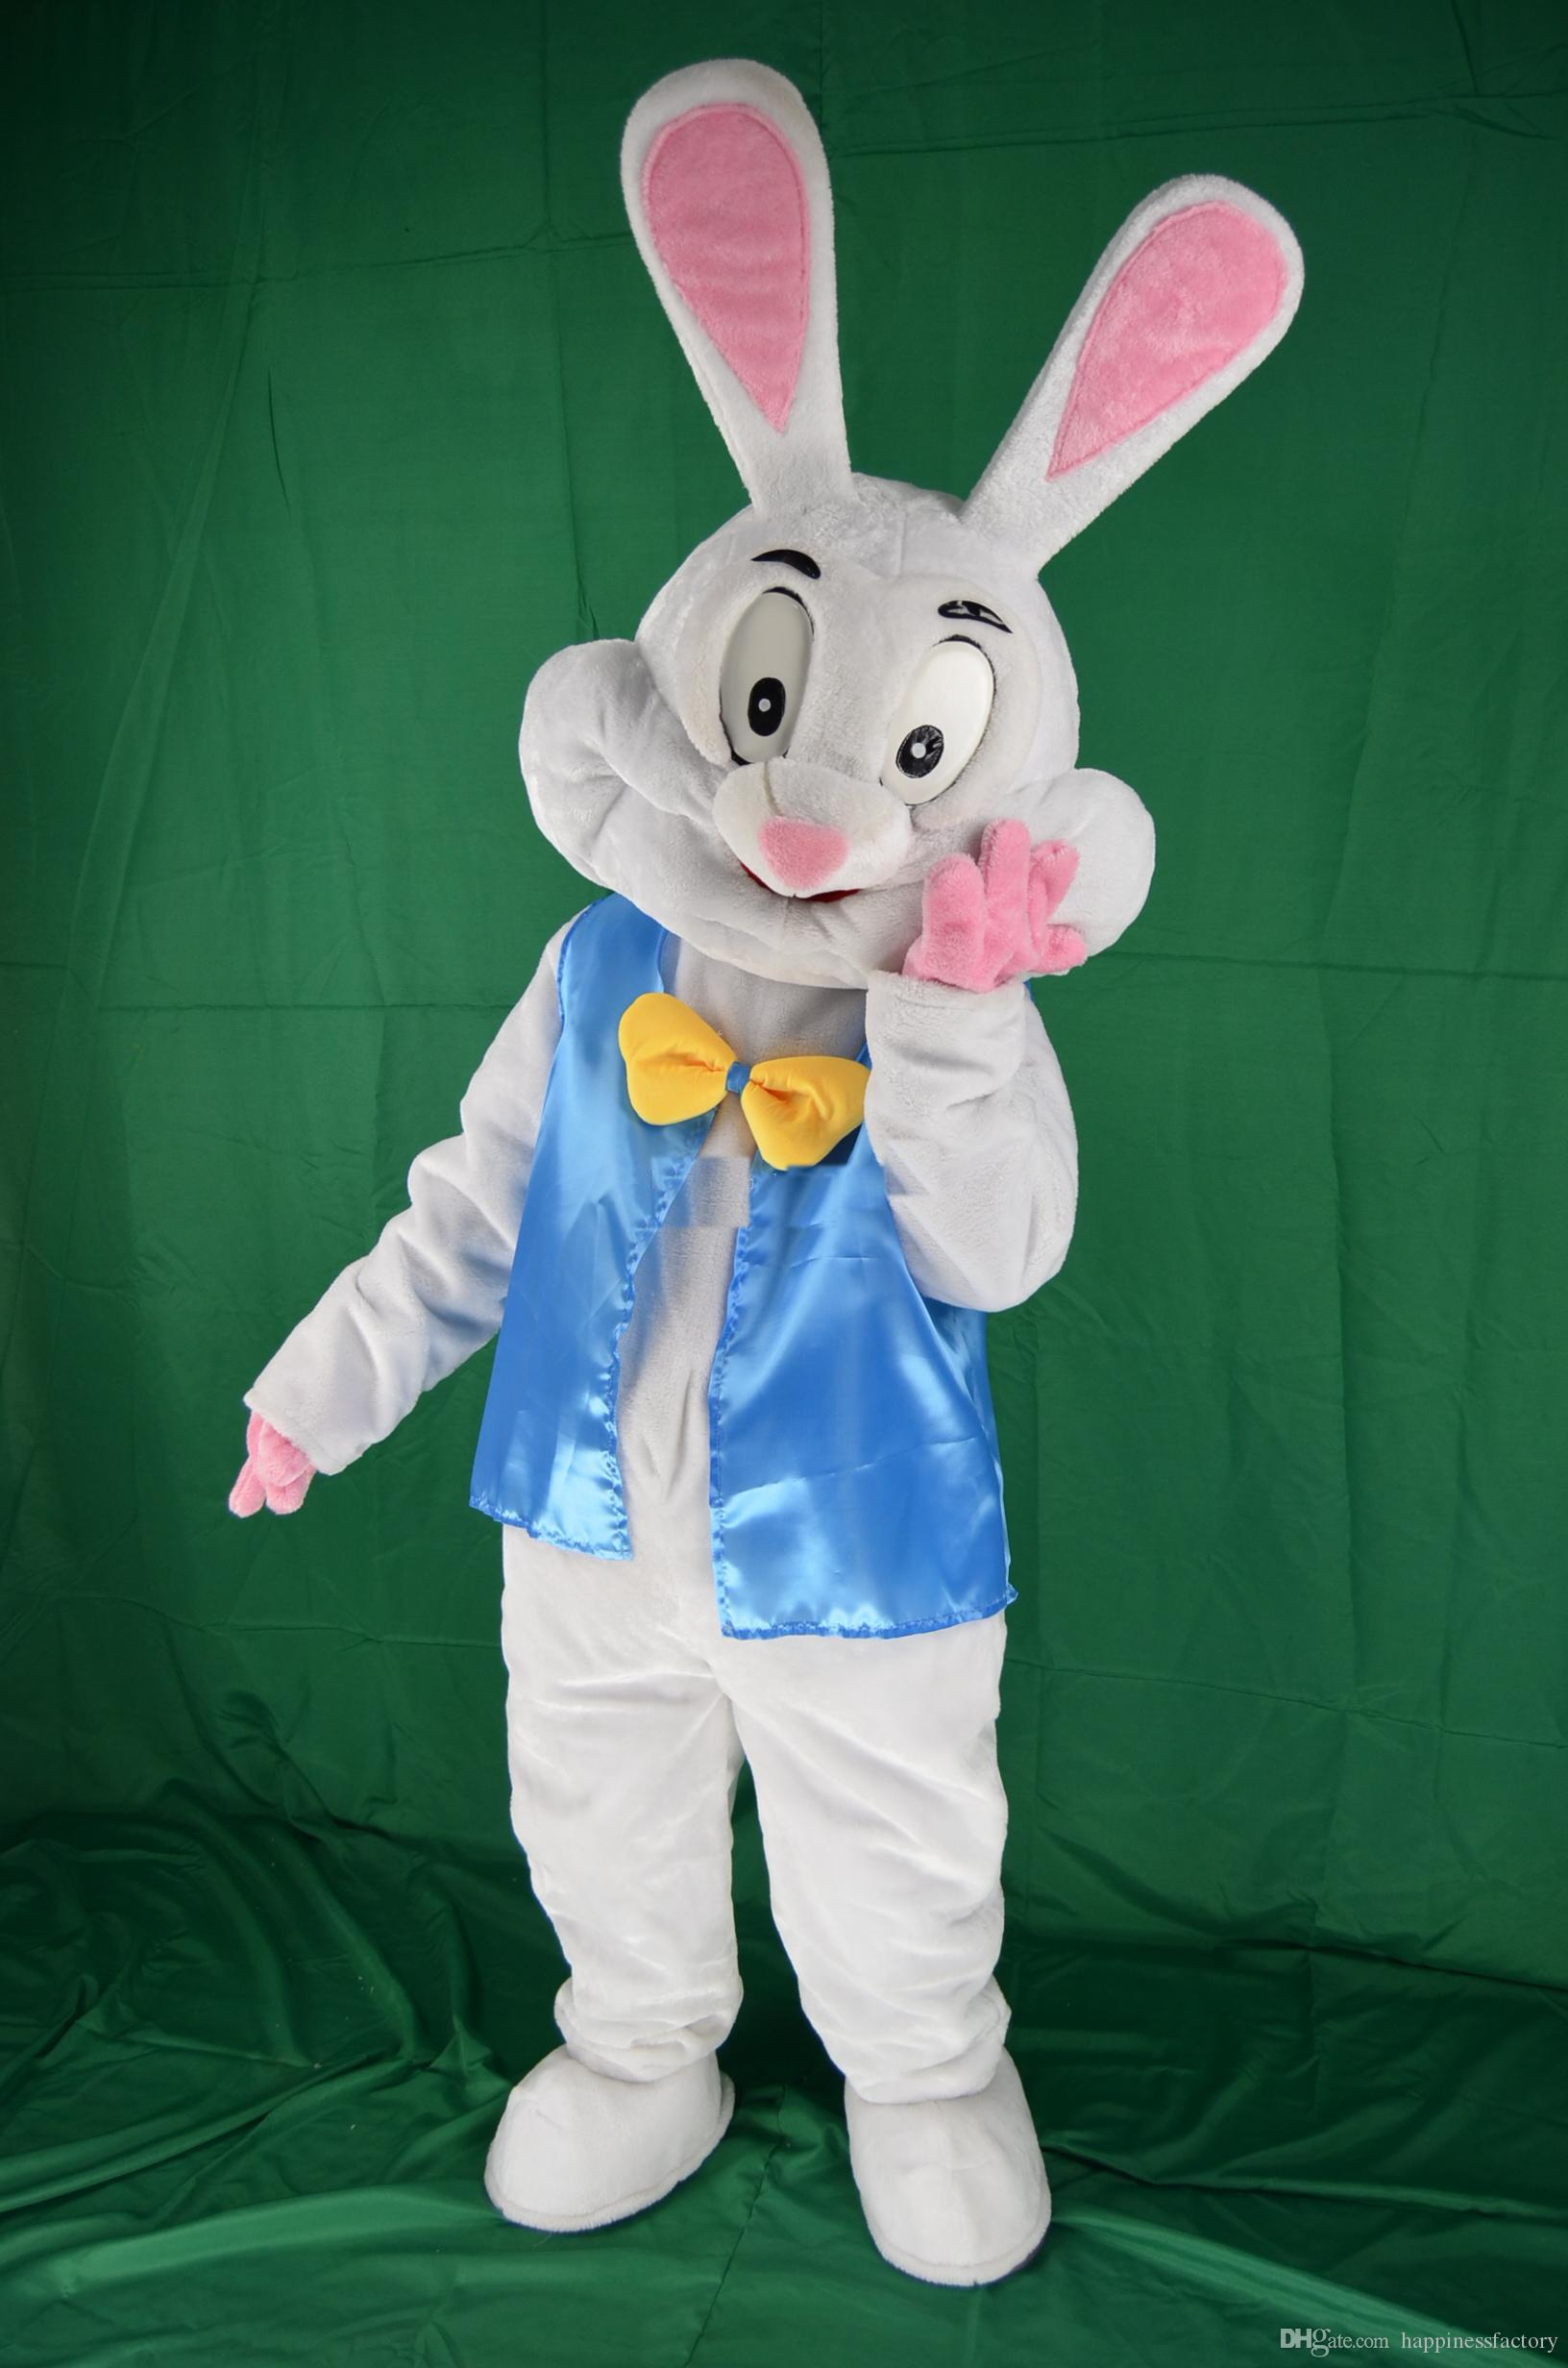 2018 Factory sale hot Easter bunny mascot costume fancy dress funny animals bugs bunny mascot adult size rabbit mascot costume